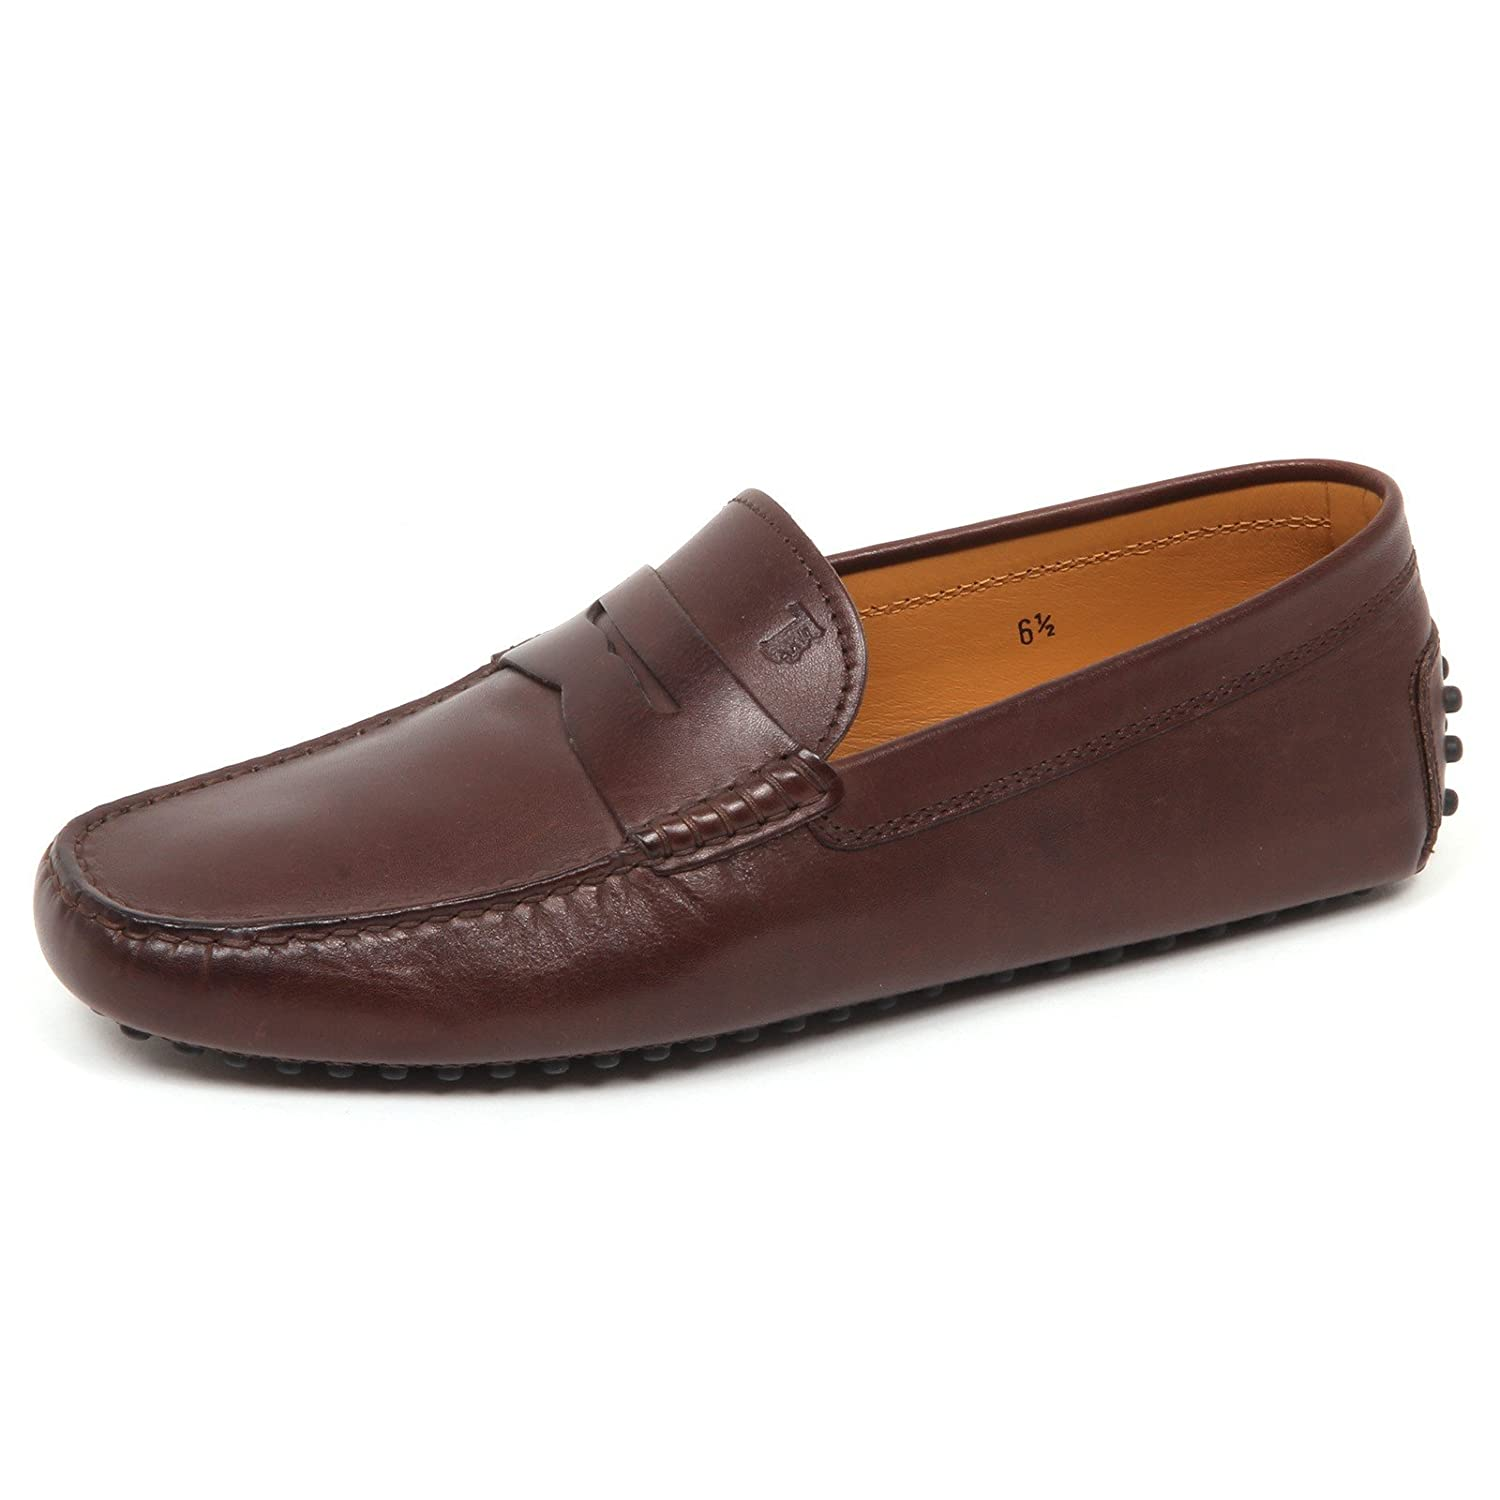 E2786 Mocassino uomo Brown Tod's Scarpe Loafer Shoe Man 11|Marrone